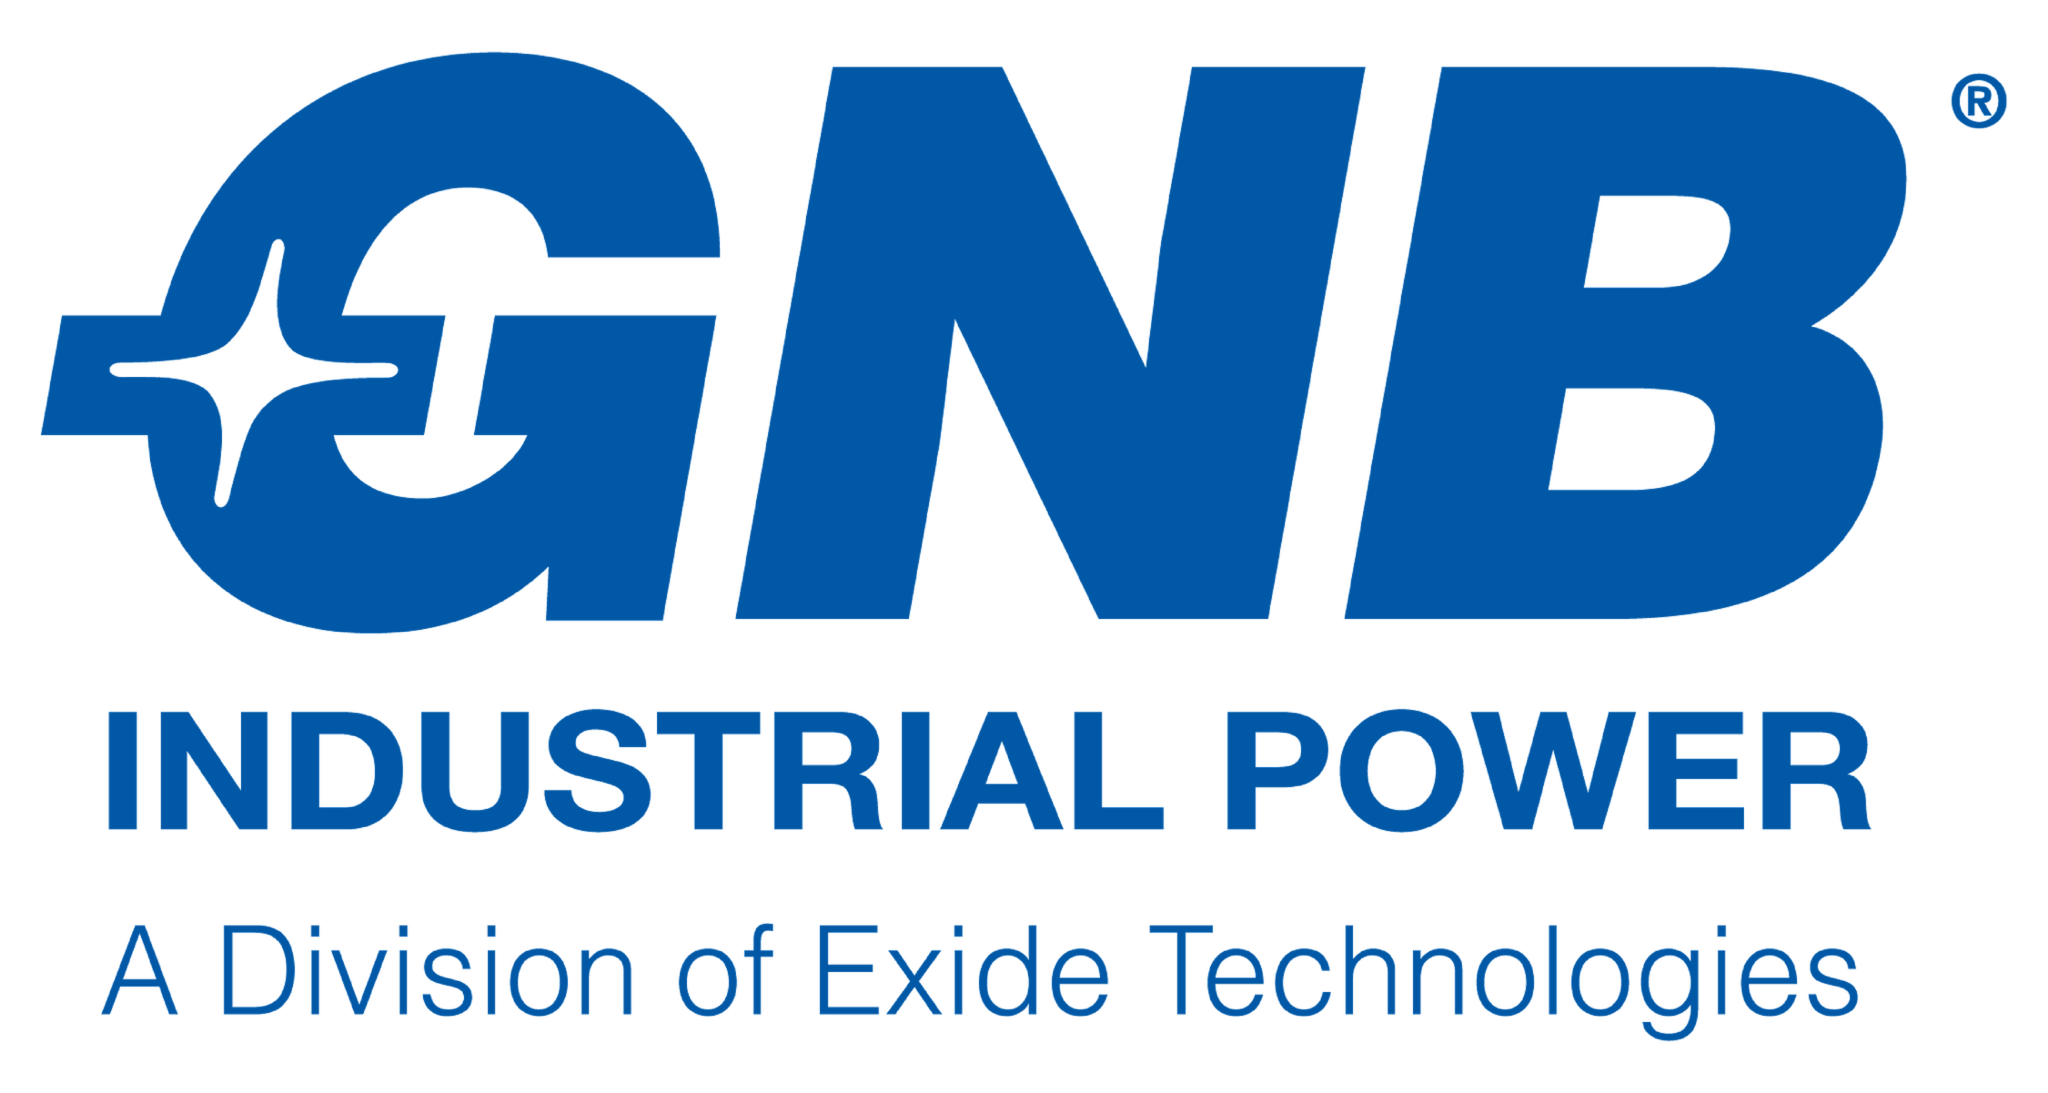 GNB Industrial Power - A Division of Exide Technologies